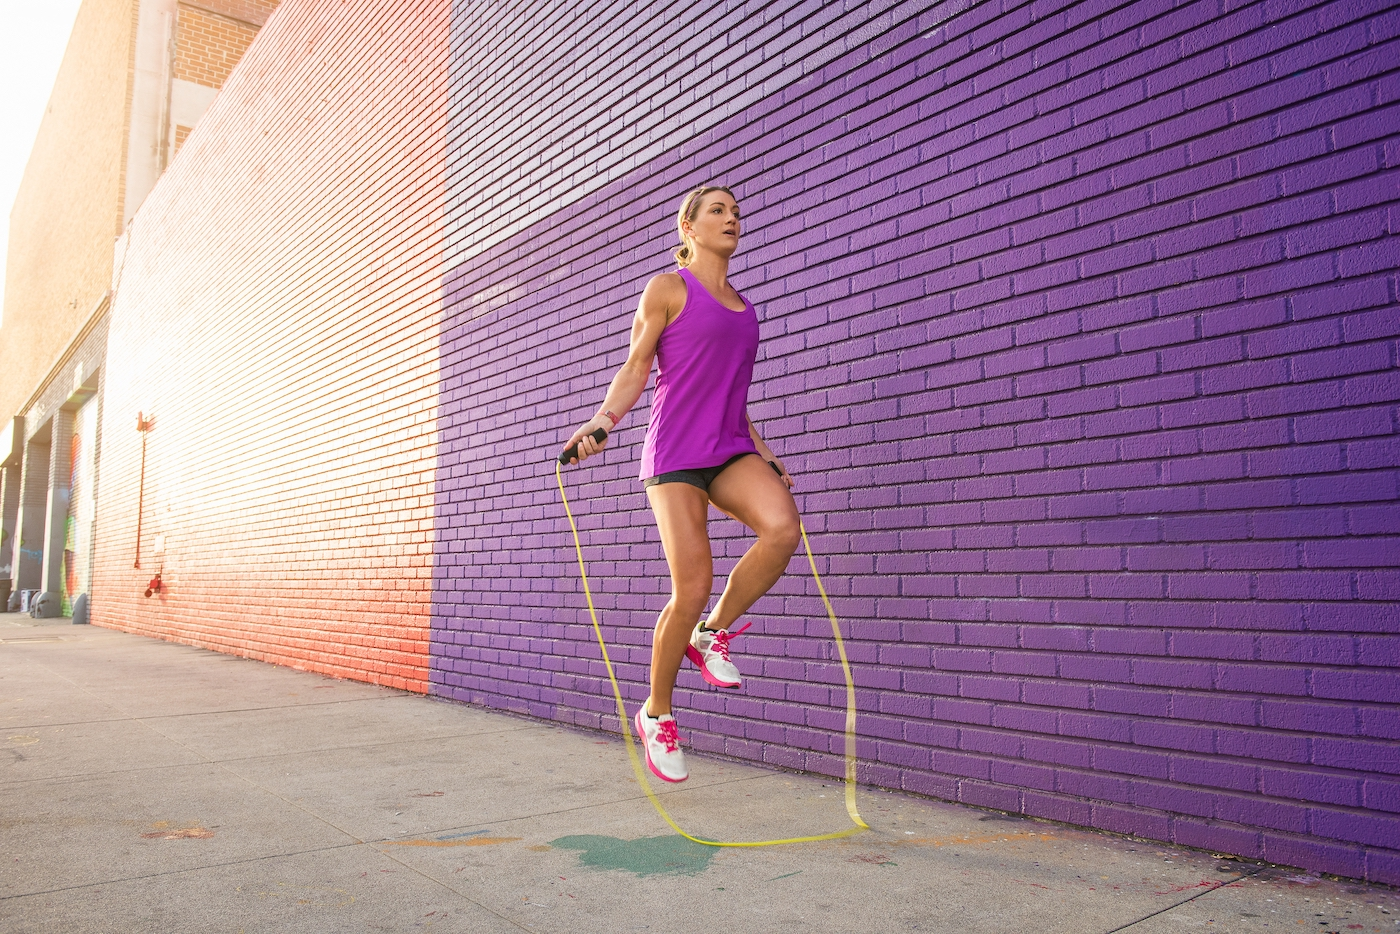 Thumbnail for Trainers Agree: Jumping Rope Is One of the Best Forms of At-Home Cardio